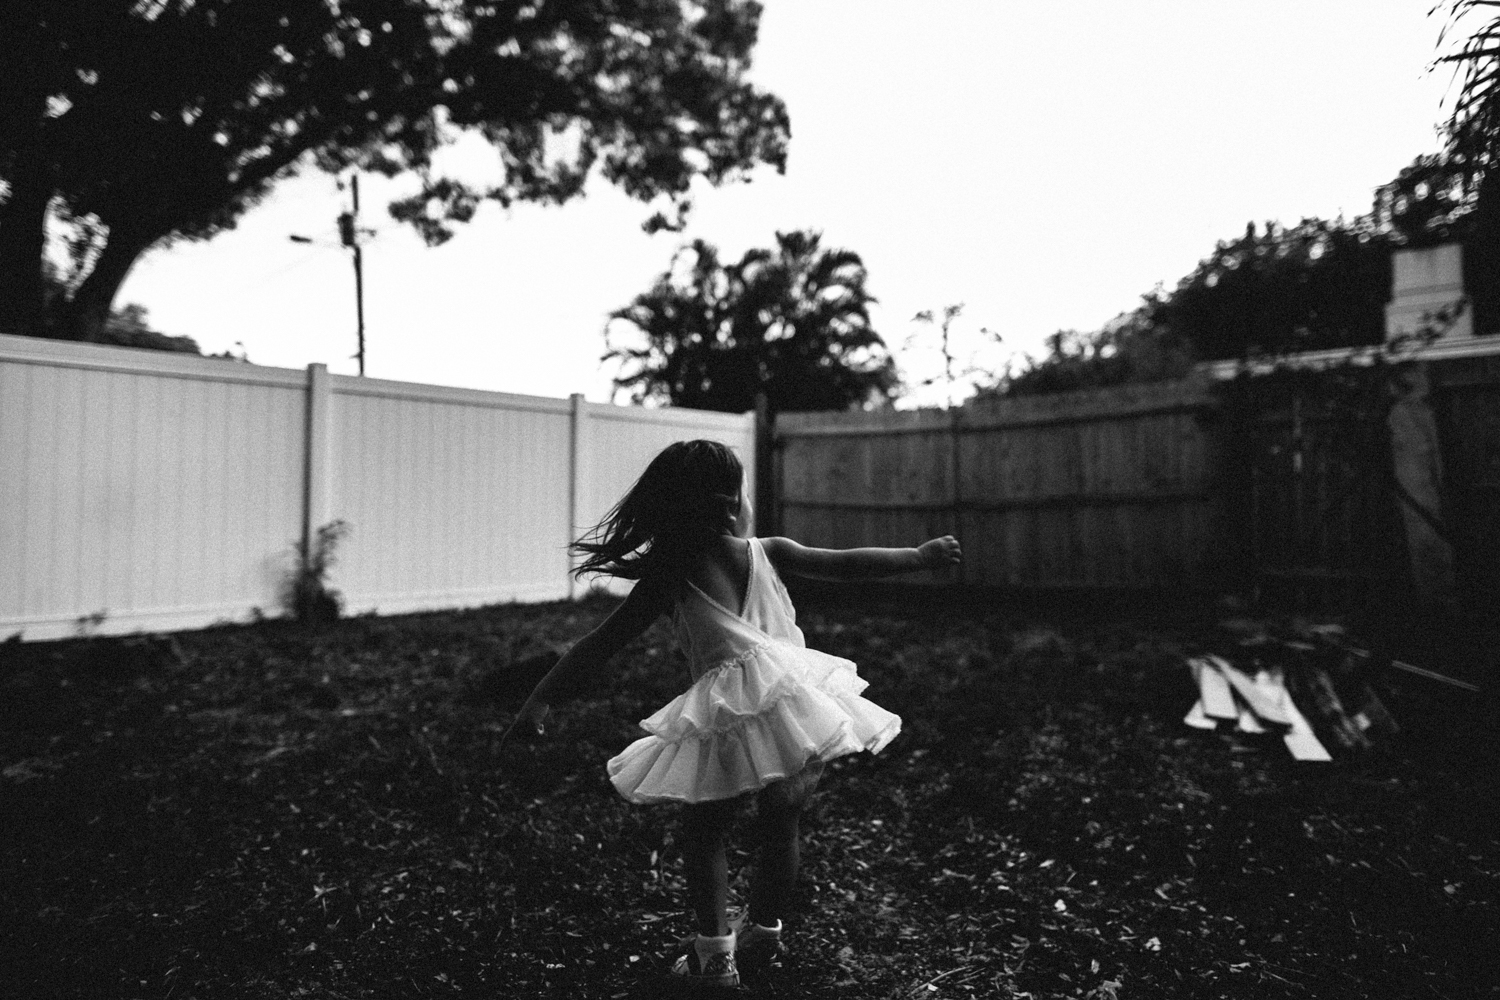 black and white family photography, tampa bay fl